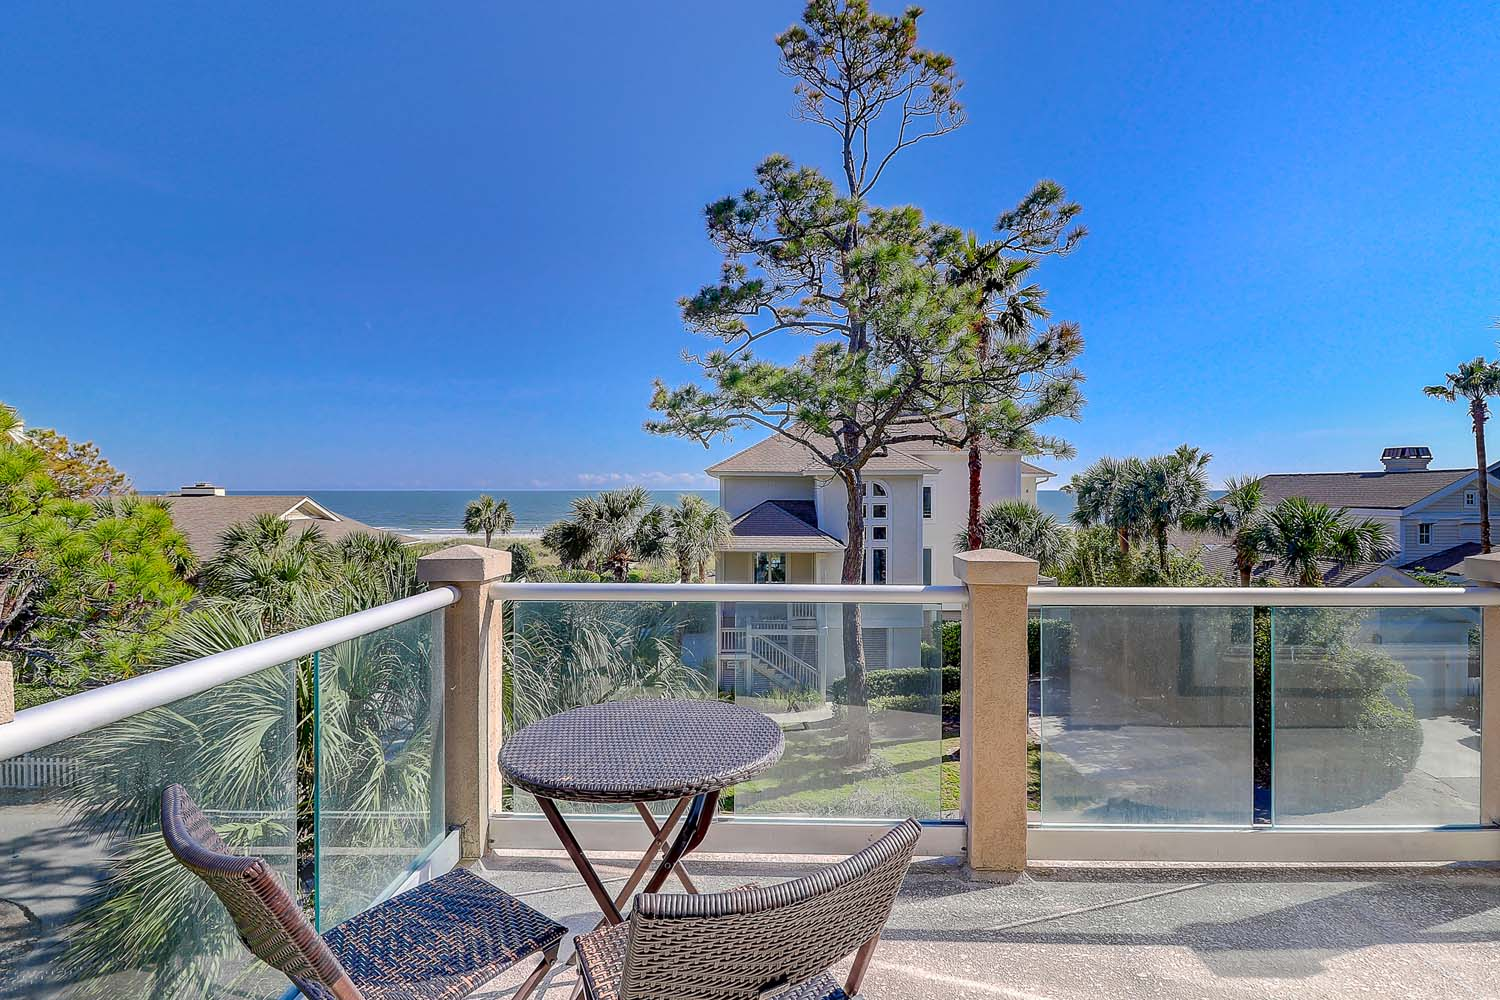 Gorgeous upper level sun deck balcony with ocean view